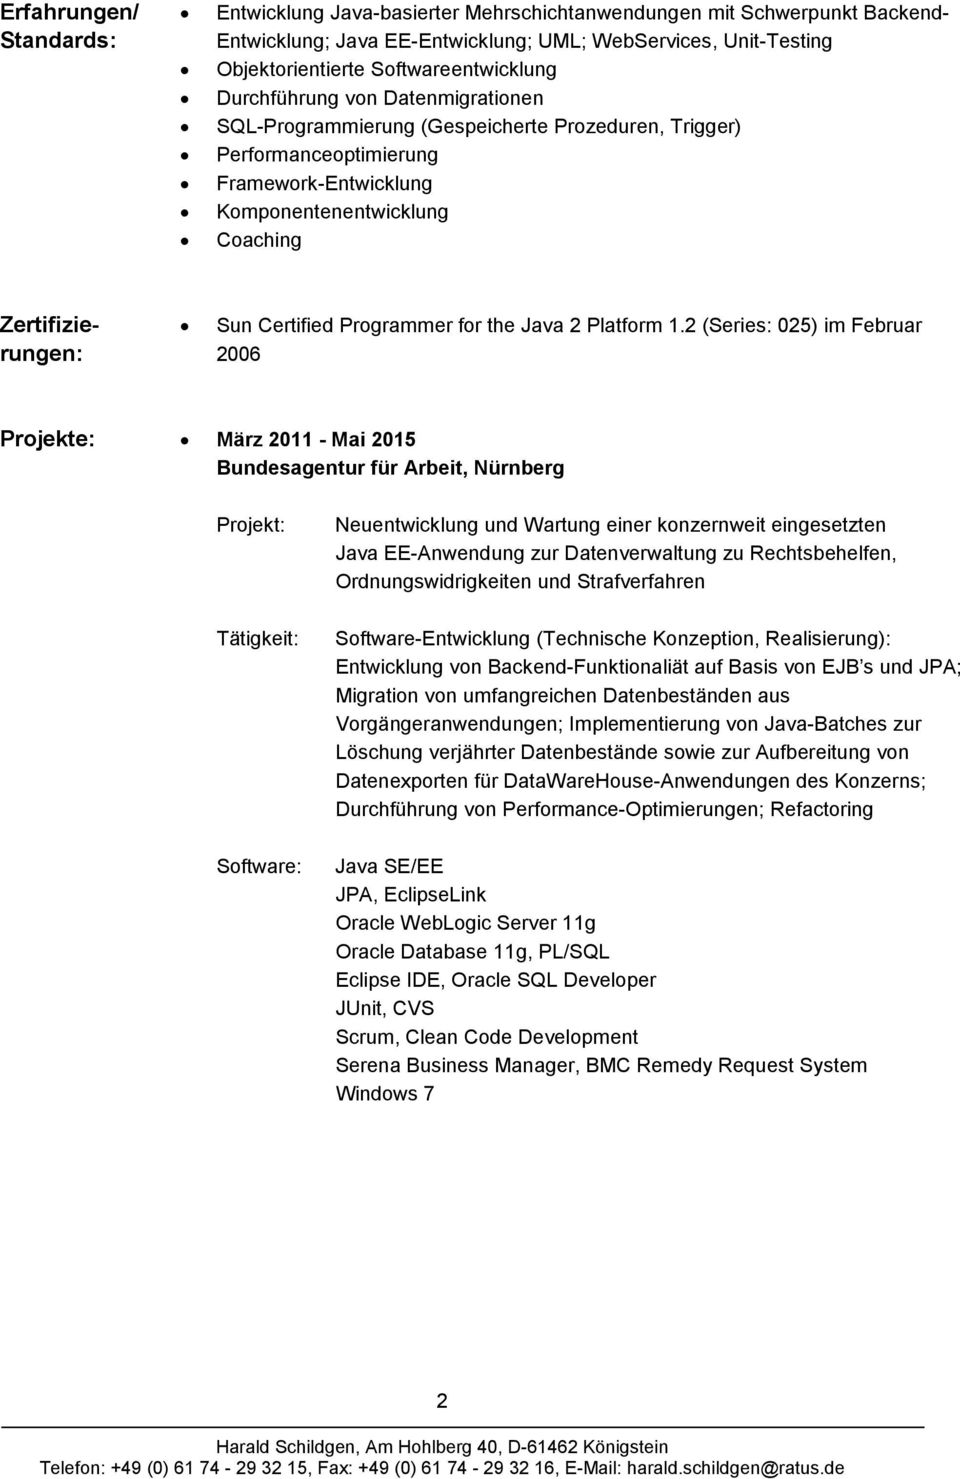 Zertifizierungen: Sun Certified Programmer for the Java 2 Platform 1.